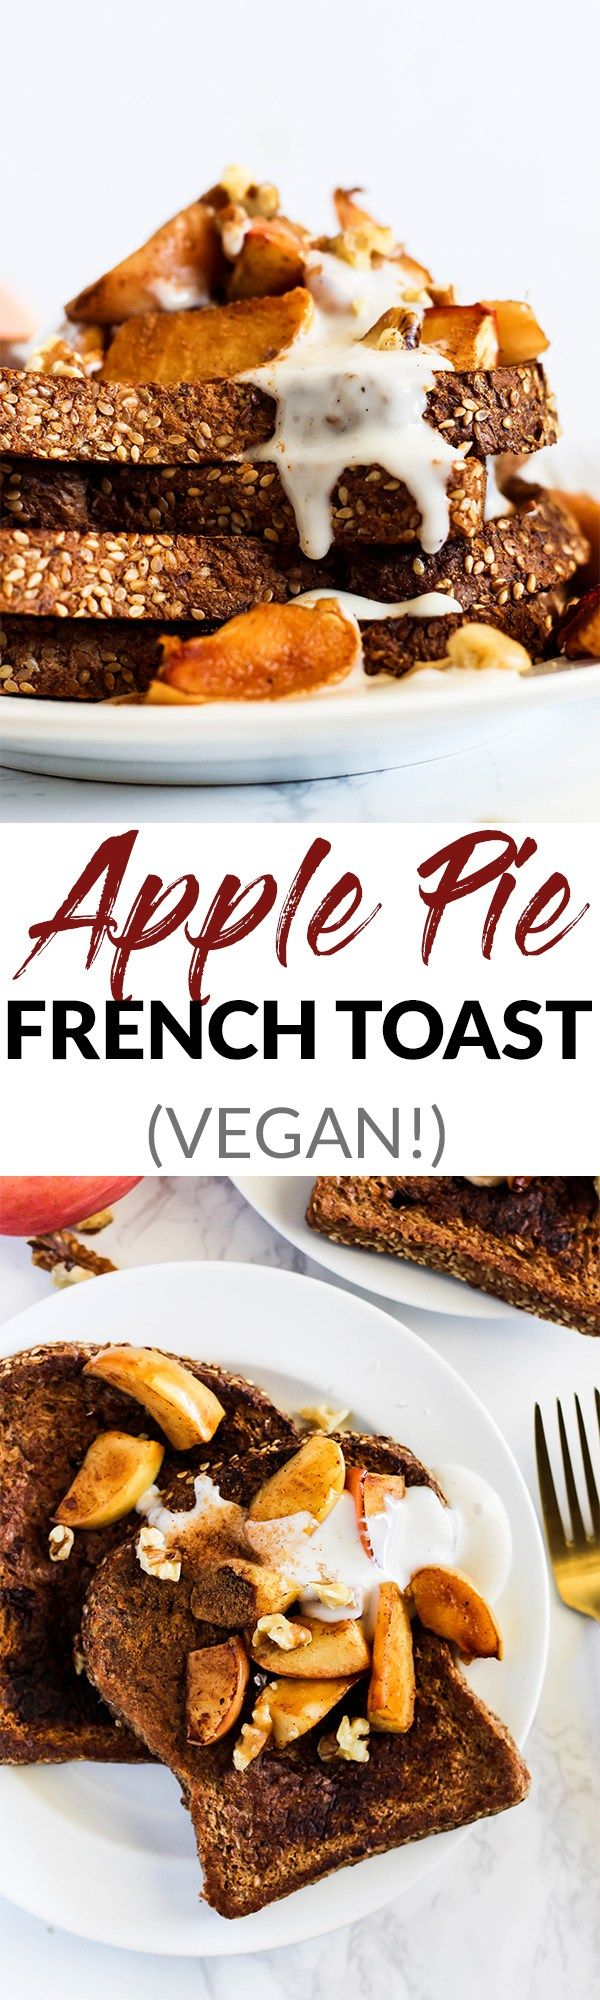 Make breakfast the most satisfying meal of the day with some Apple Pie Vegan French Toast! Simple to make, wholesome, and absolutely delicious. In partnership with @SilverHills. #ad